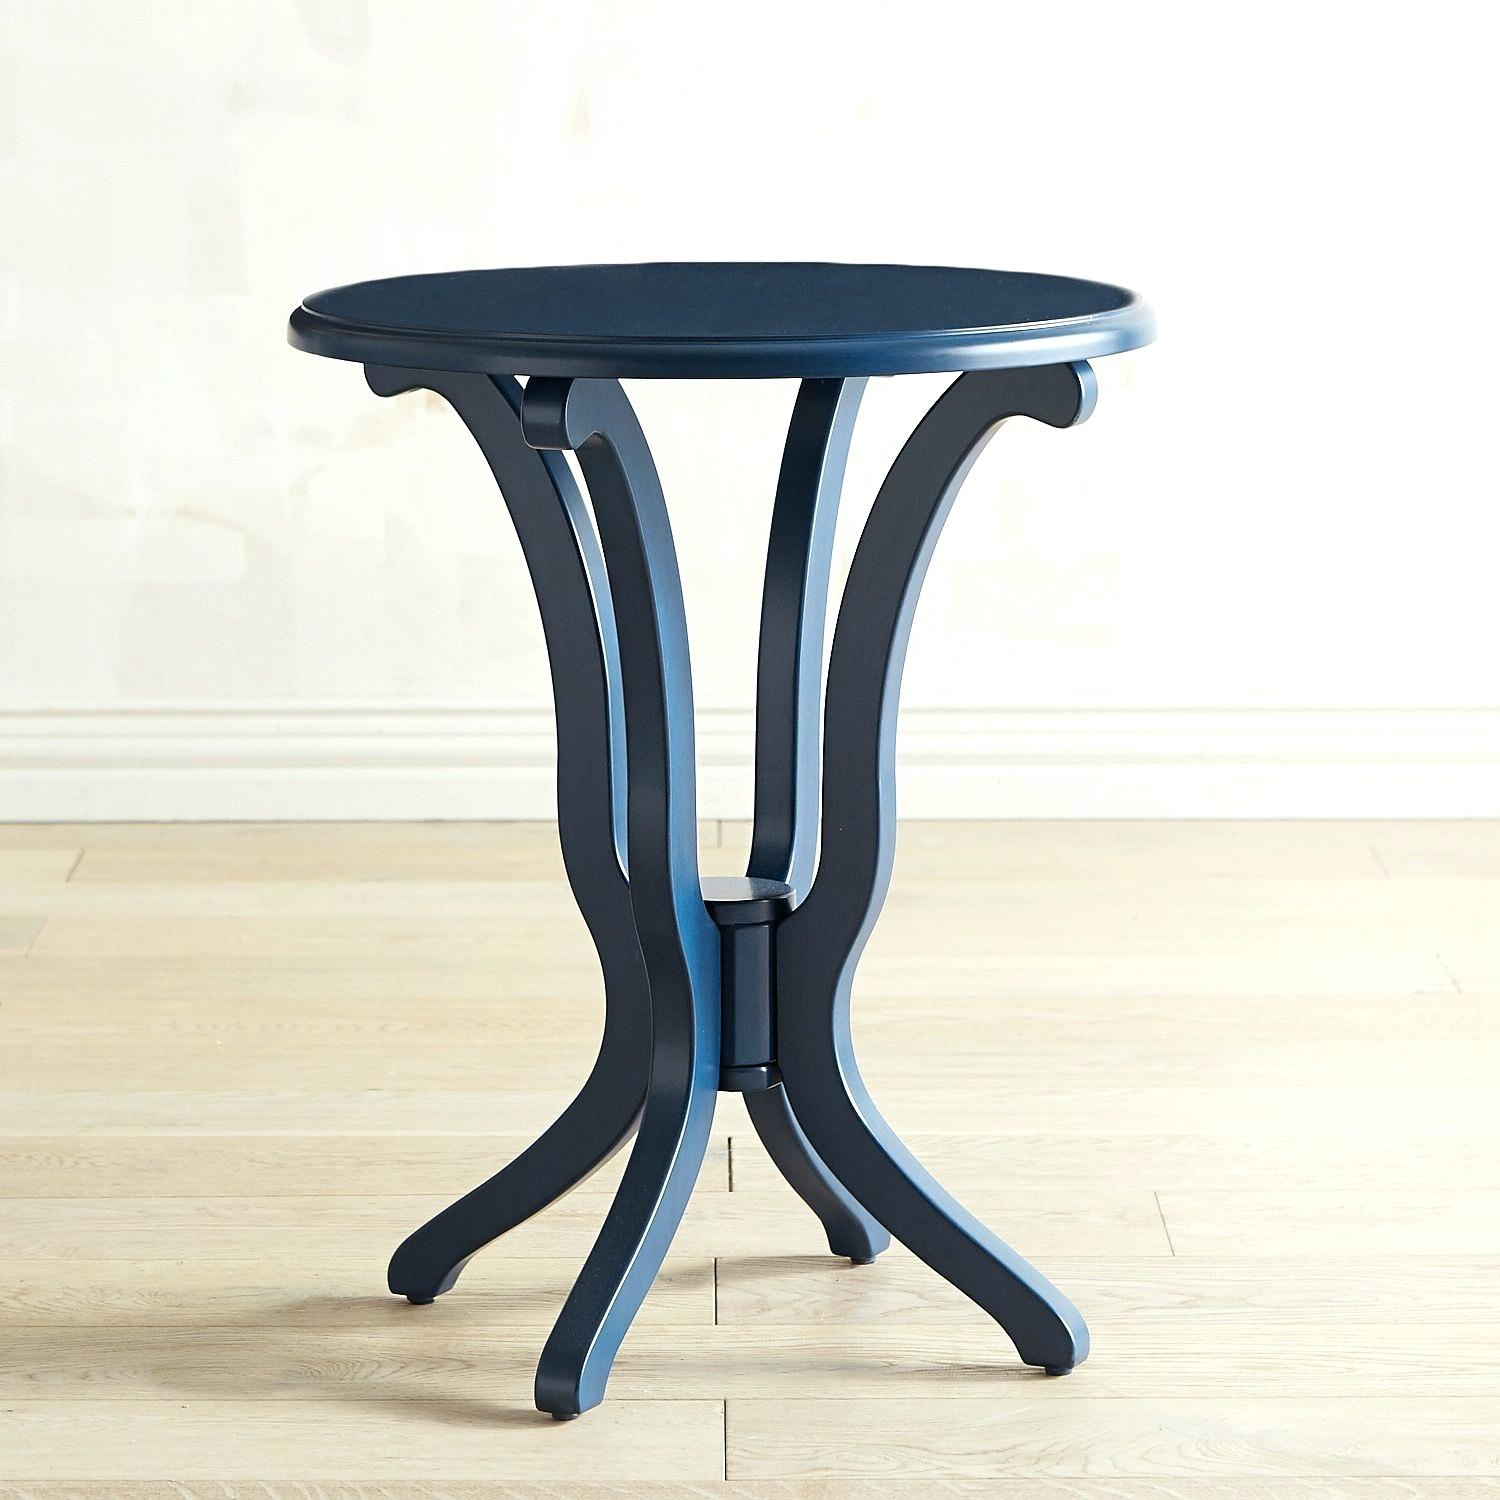 blue accent table apk club rania collection fretwork dale tiffany glass wall art ikea wood coffee furniture tile patio outdoor drum side canadian tire corner study desk cylinder